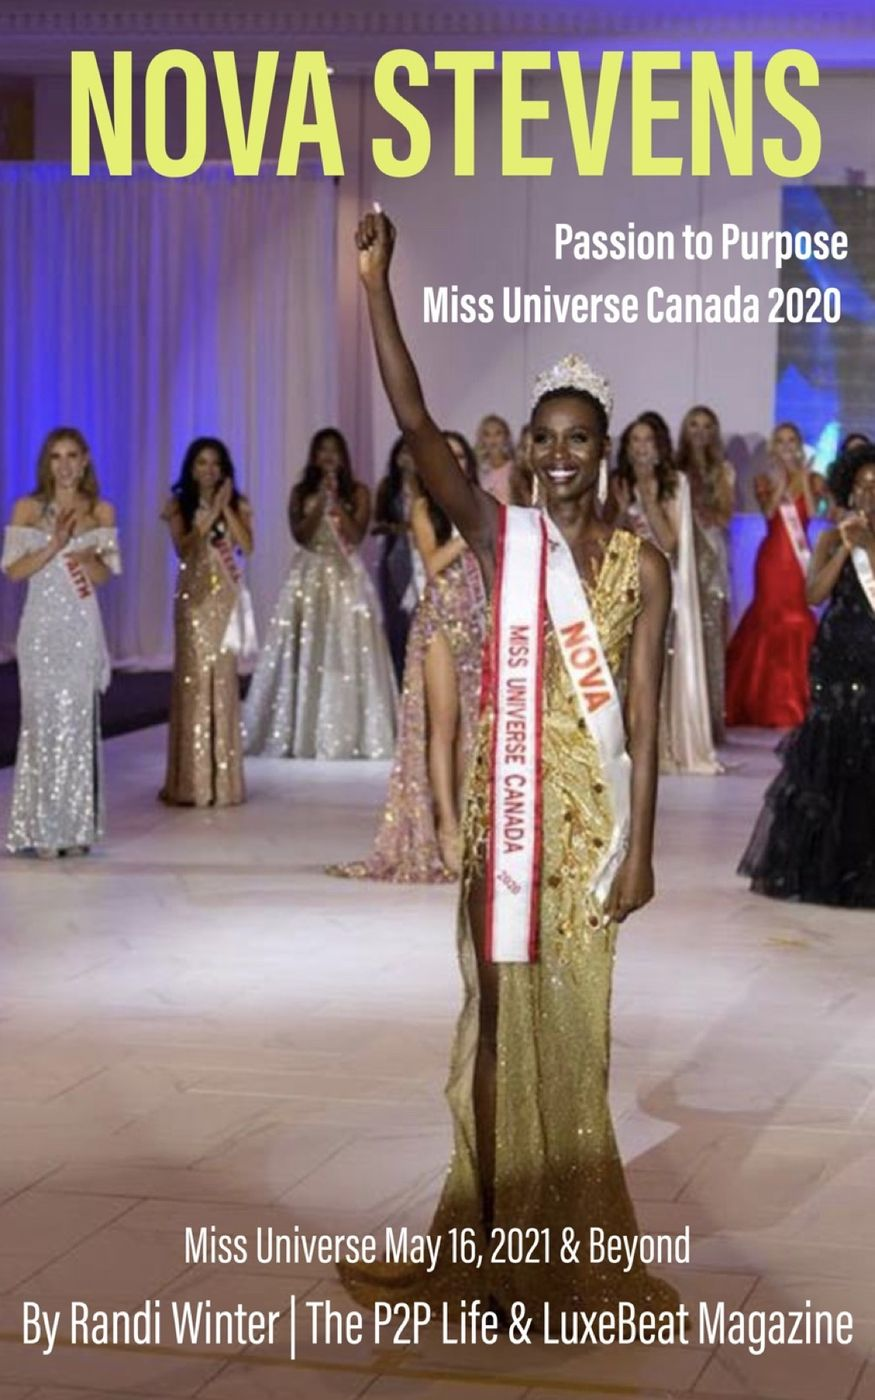 Nova Stevens, Miss Universe Canada 2020's journey from refugee to model, actress, social activist, author and now to the Miss Universe stage representing her adopted home of Canada and heritage of South Sudanese descent, is truly inspirational.